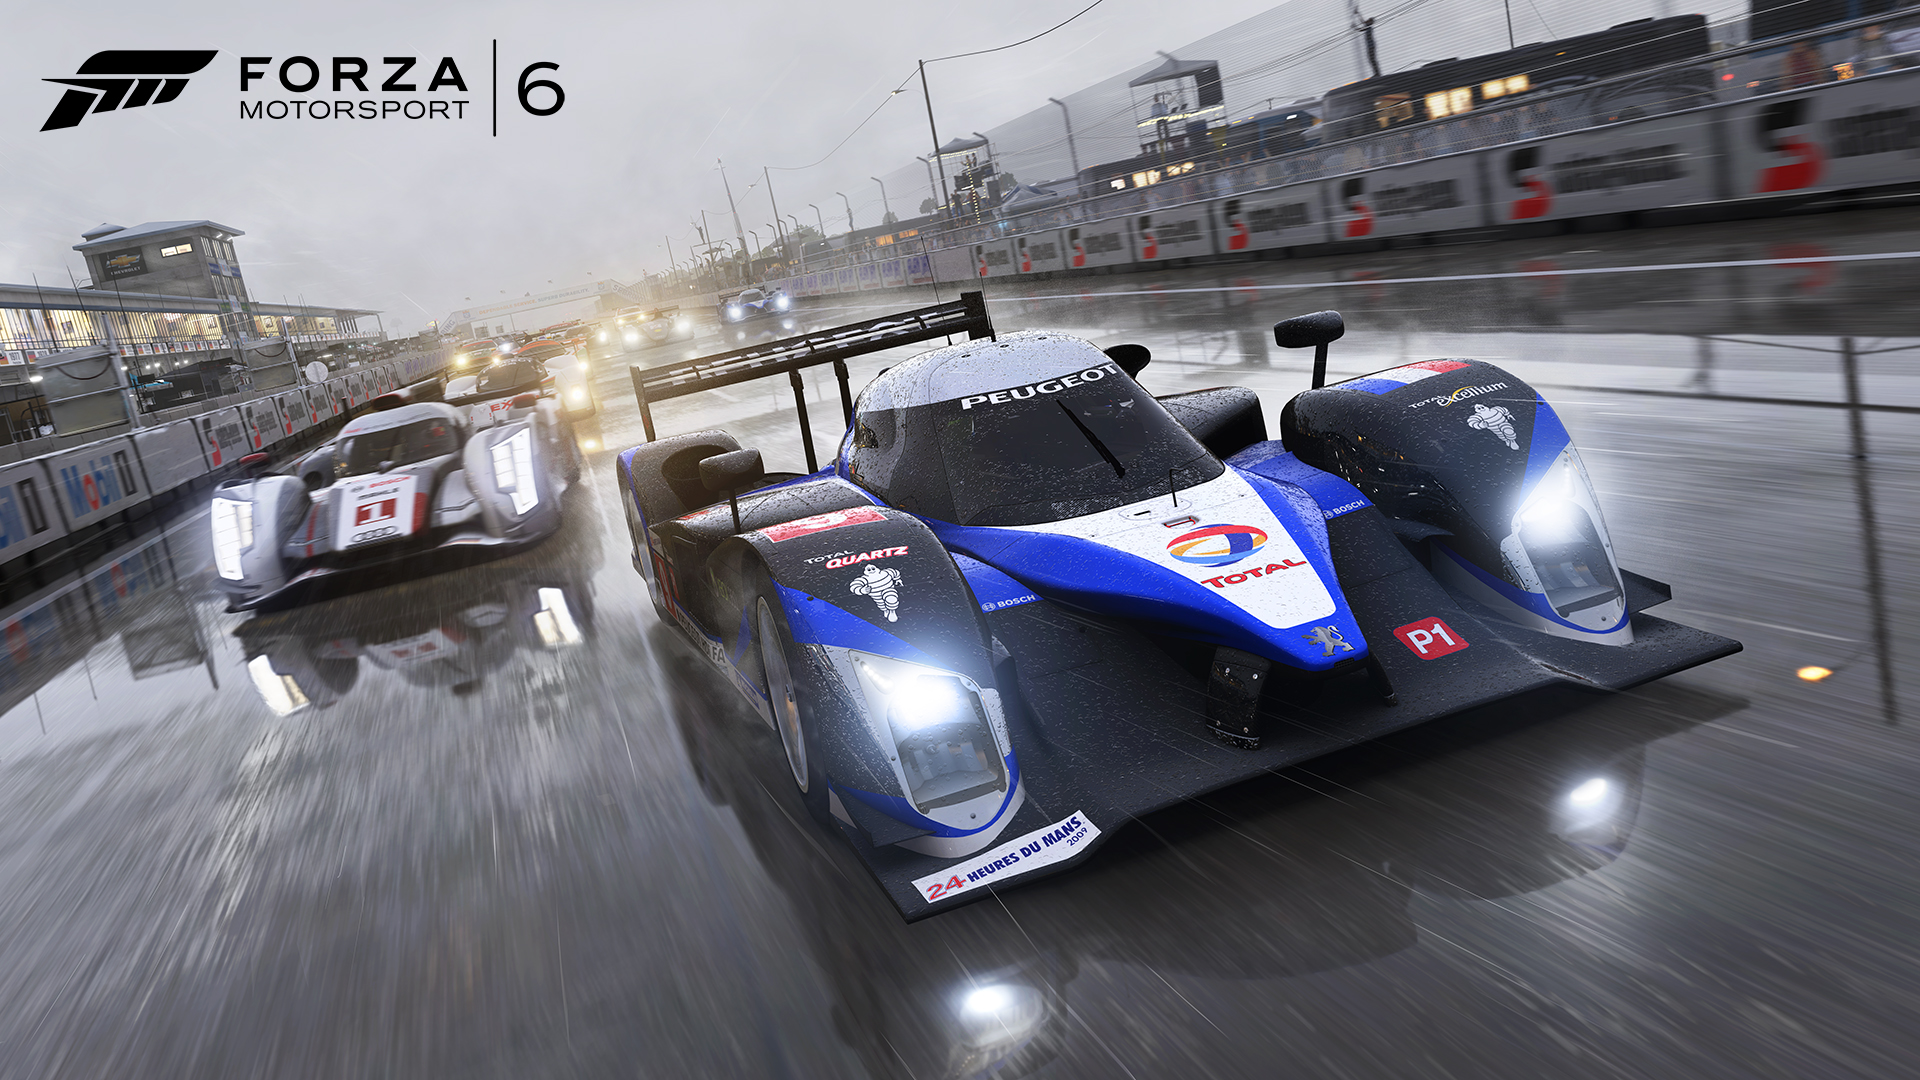 Forza Motorsport 6 - Cars